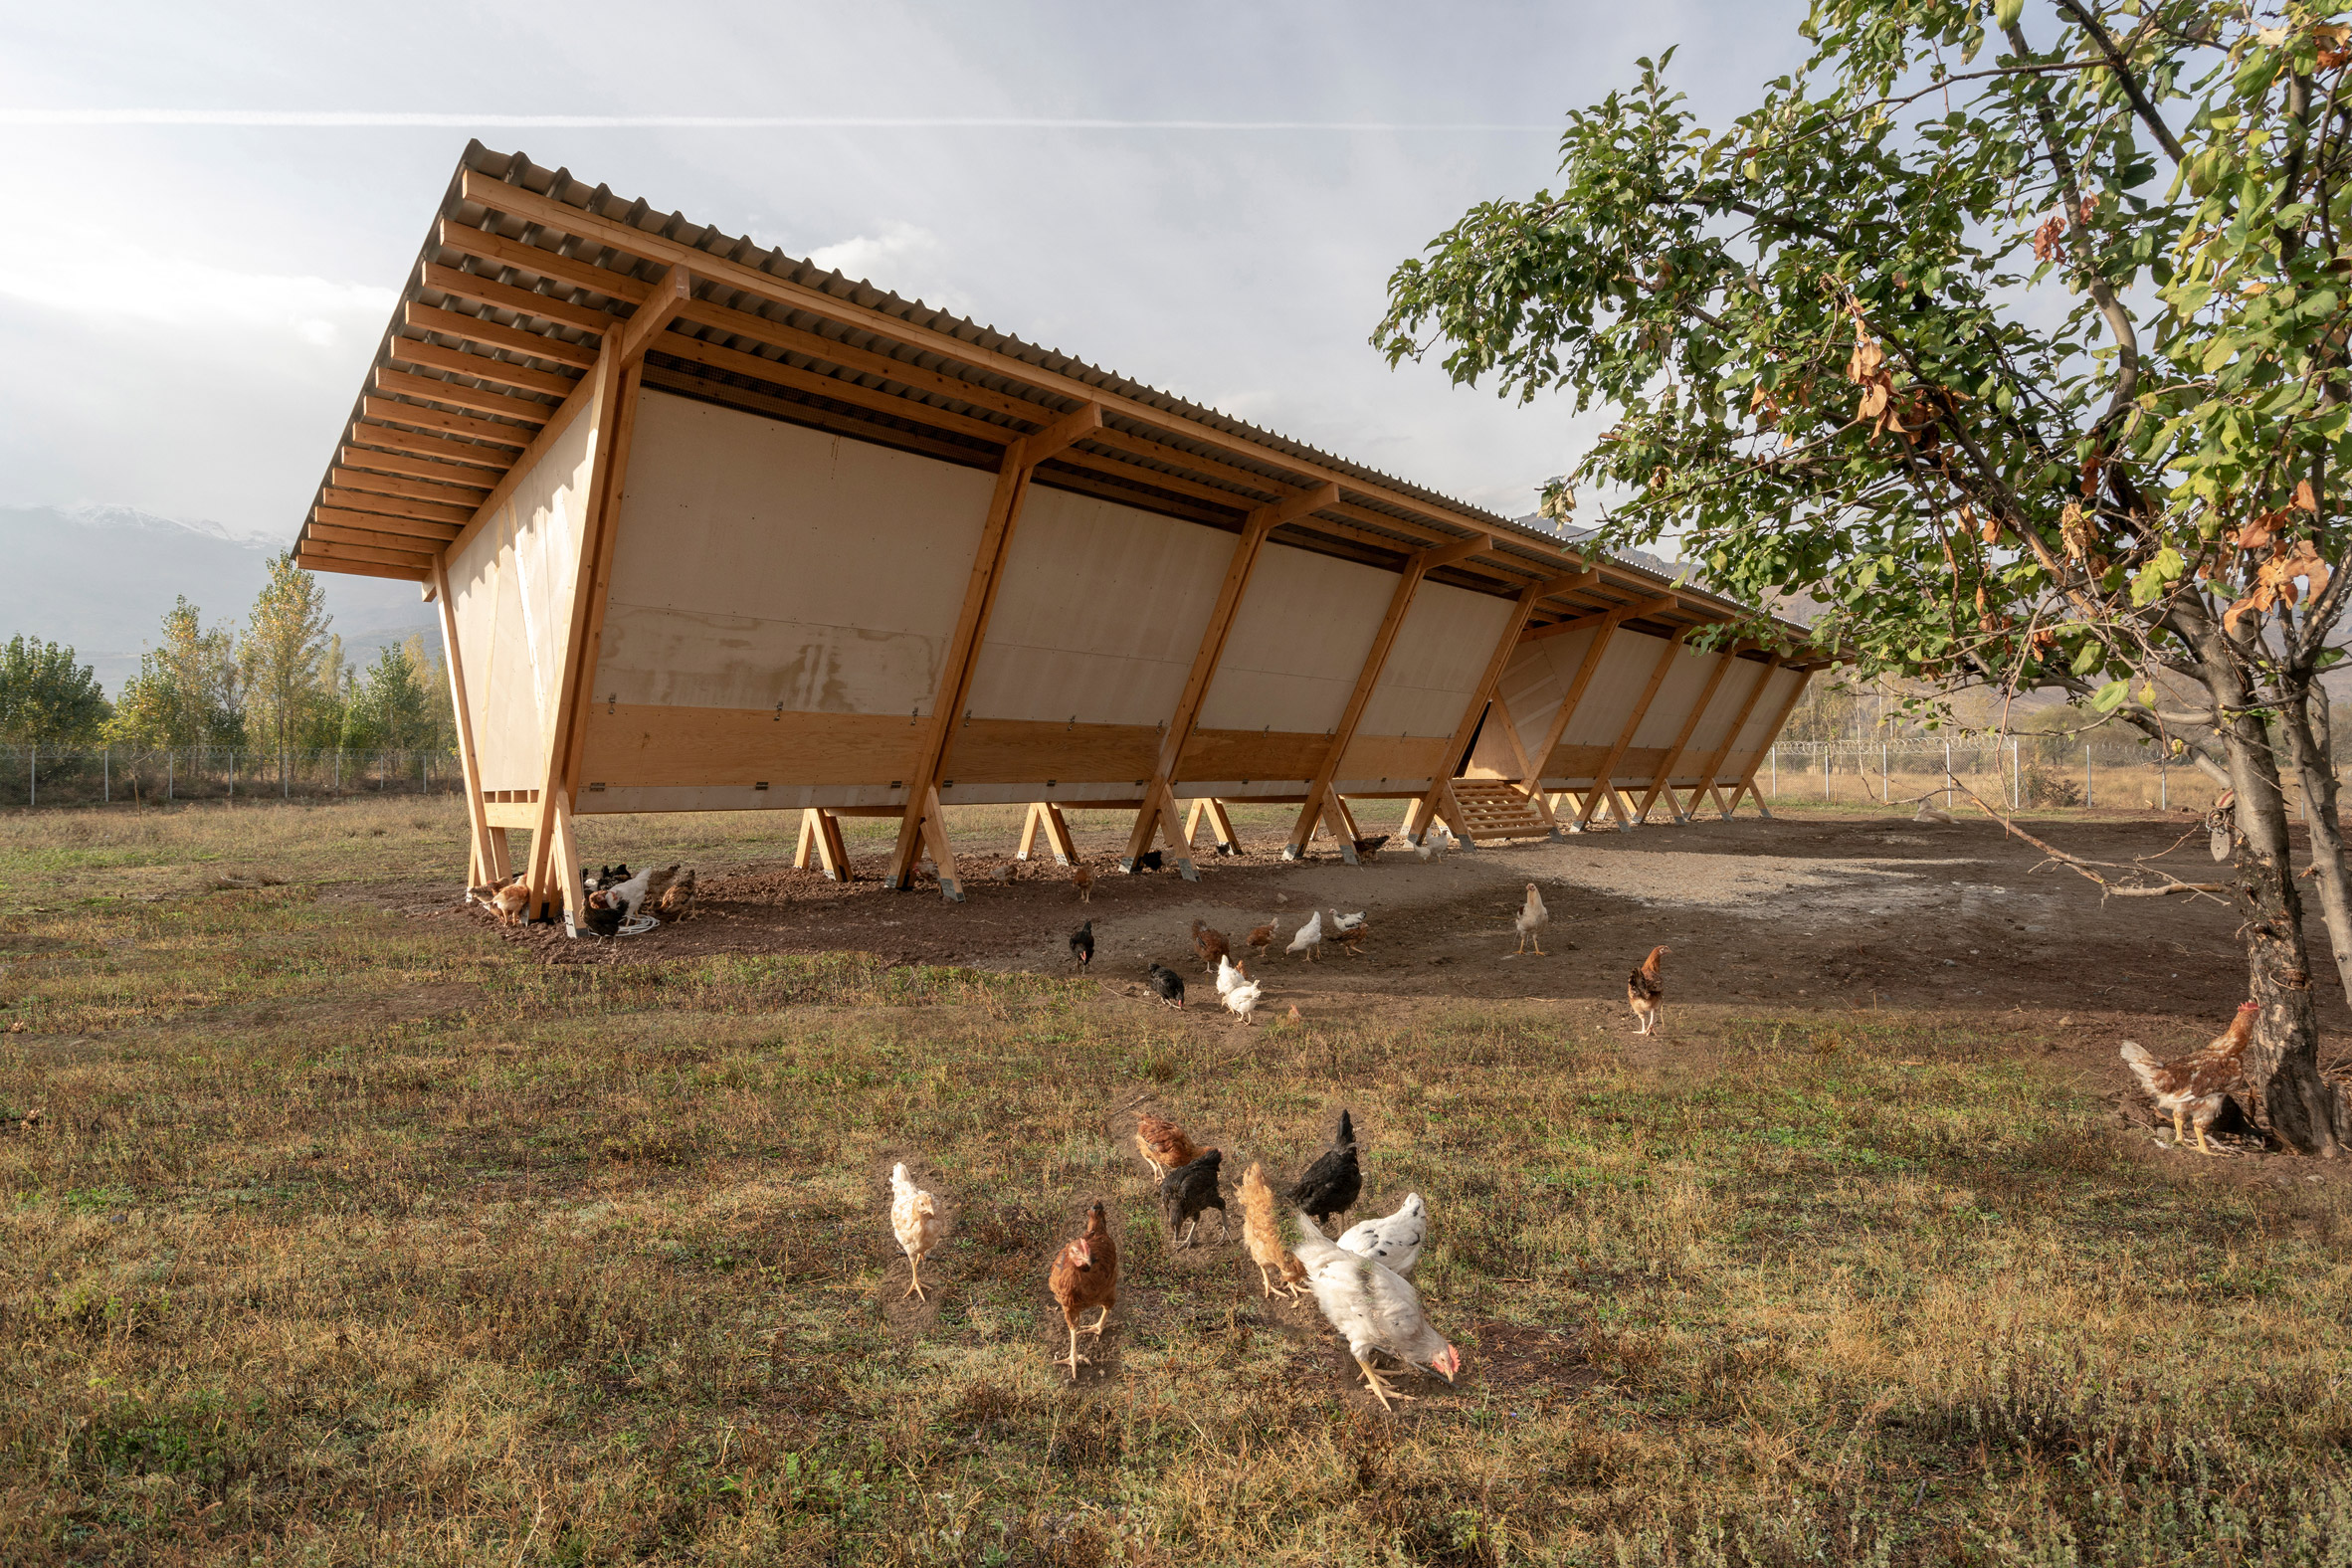 house-of-chickens-by-so-architecture-_dezeen_2364_col_3.jpg